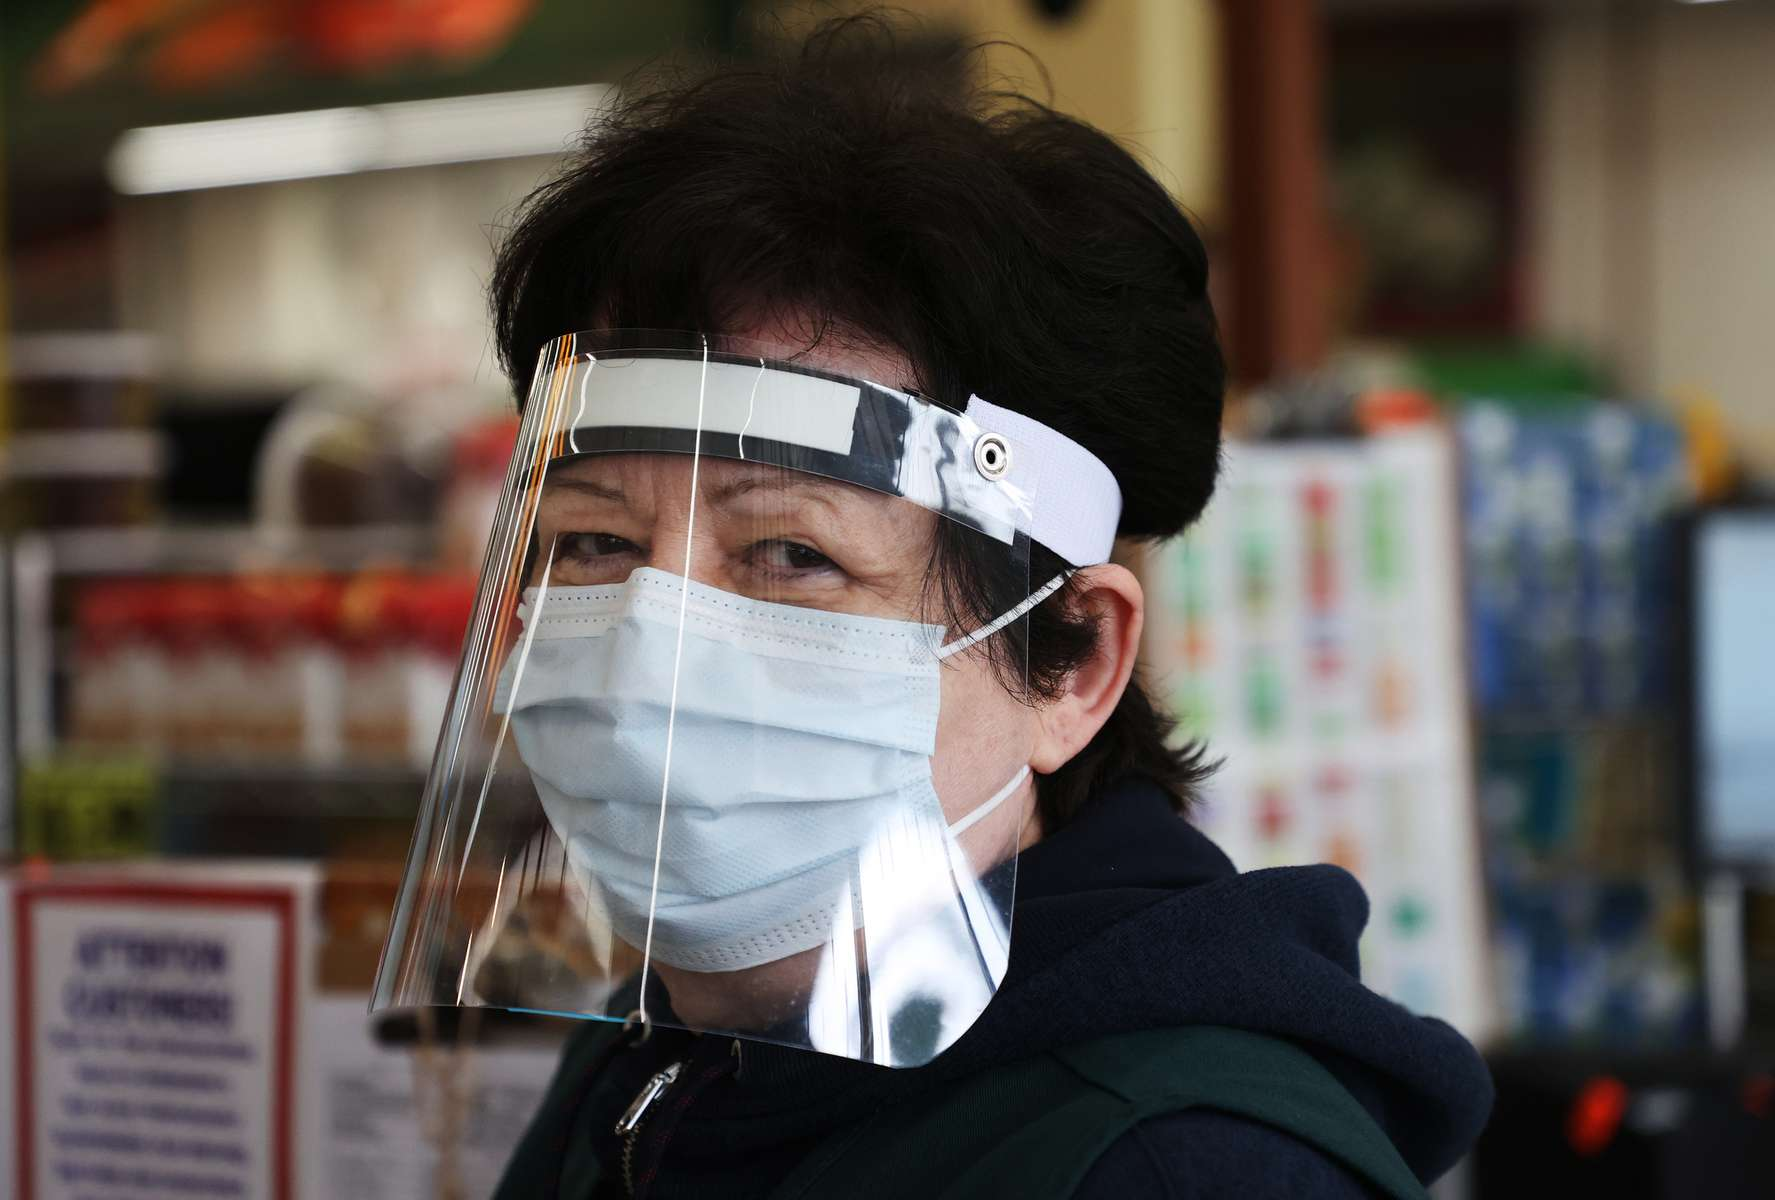 A Pat's Farms grocery store cashier looks on wearing a mask, and plastic visor on March 31, 2020 in Merrick, New York.   The World Health Organization declared coronavirus (COVID-19) a global pandemic on March 11th.